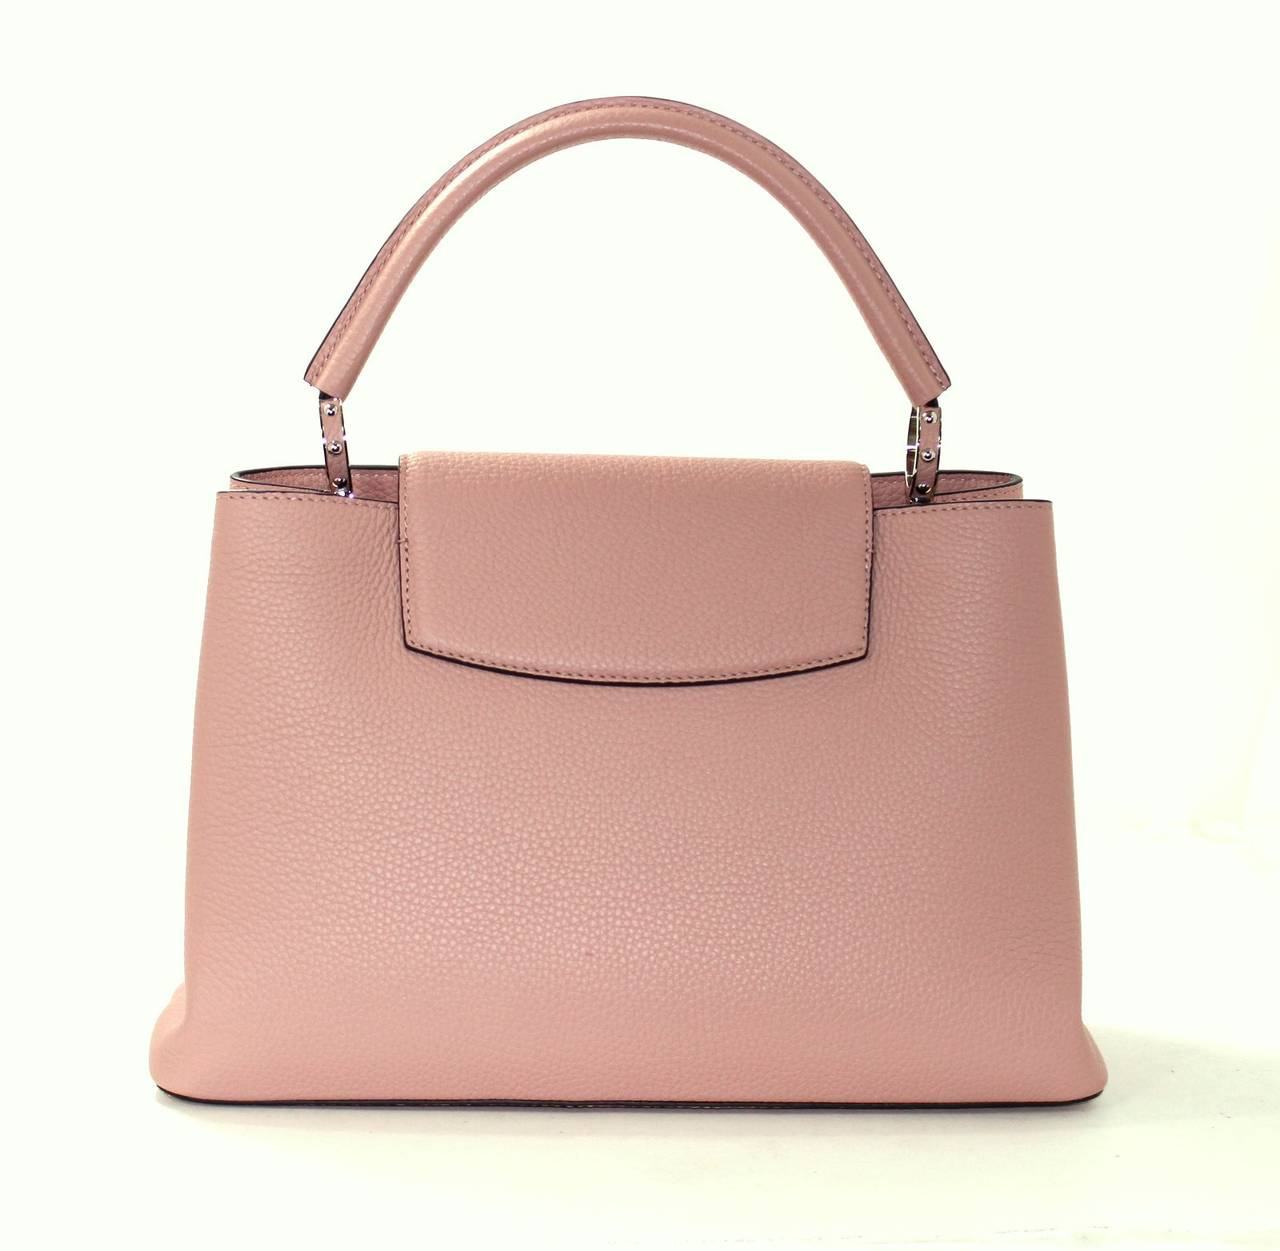 Louis Vuitton  Magnolia Leather Capucines MM Bag- PINK color 3